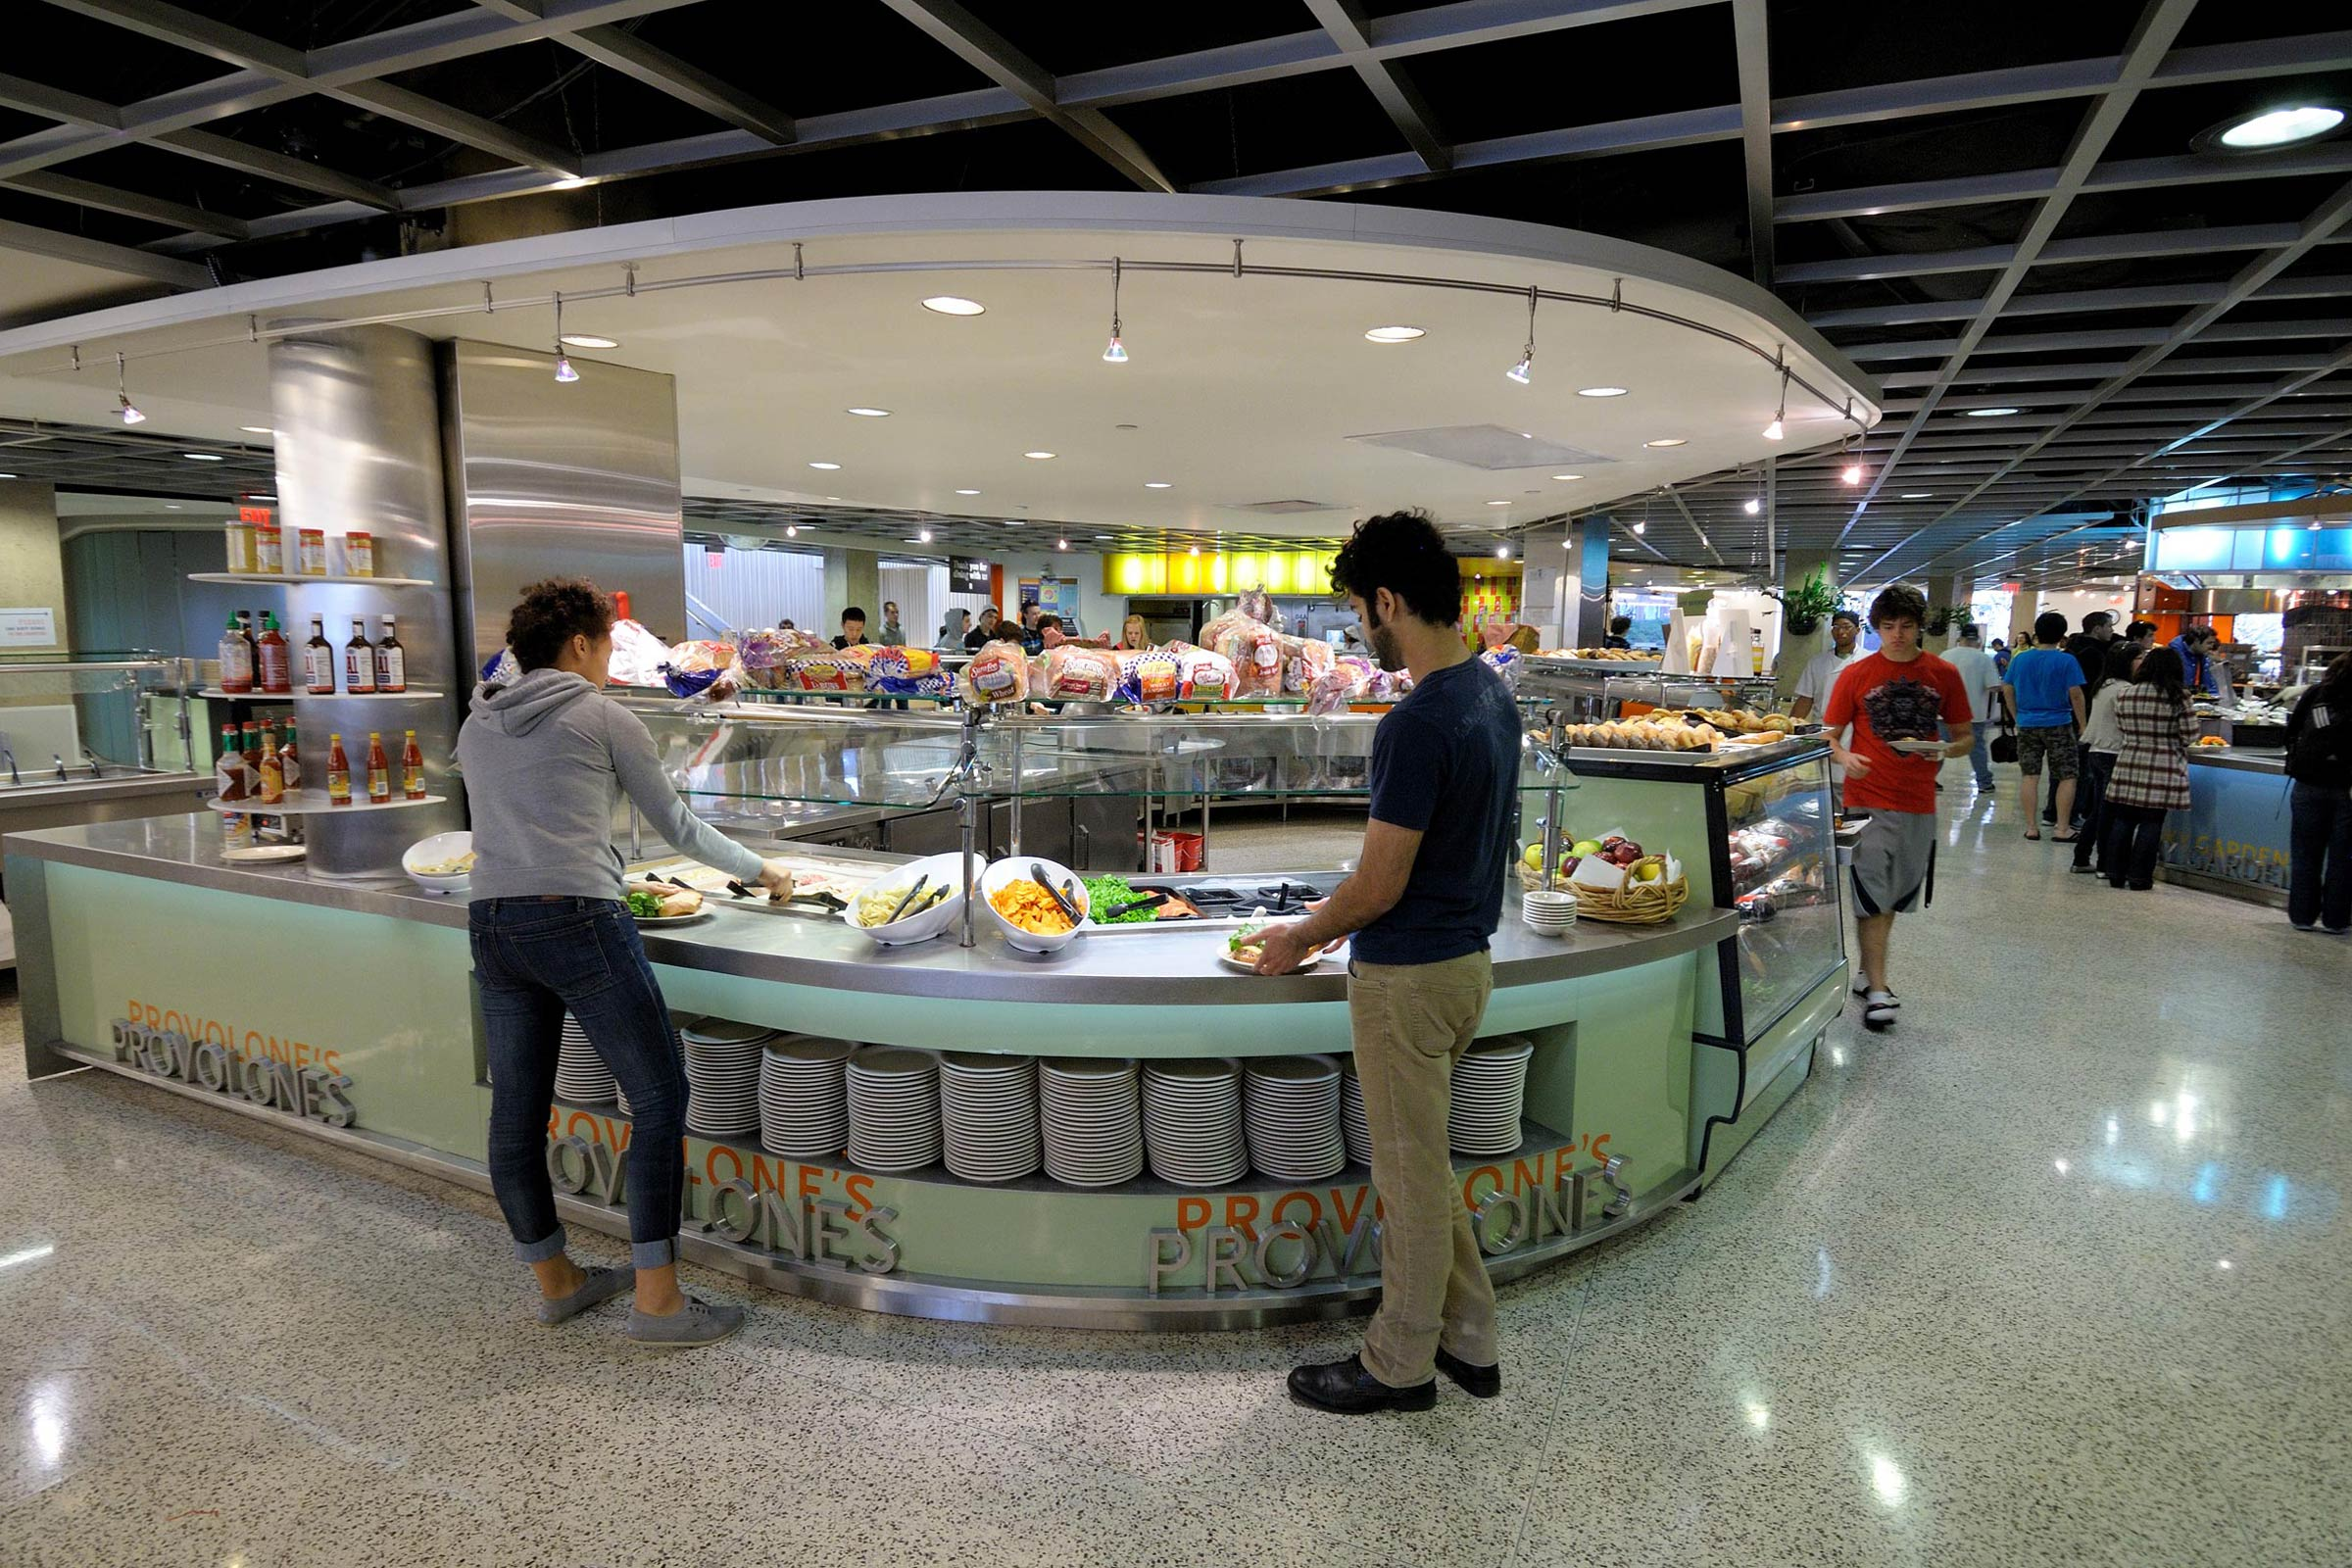 Students take food from buffet-style counter at Pennsylvania Avenue Residence Hall's dining hall.